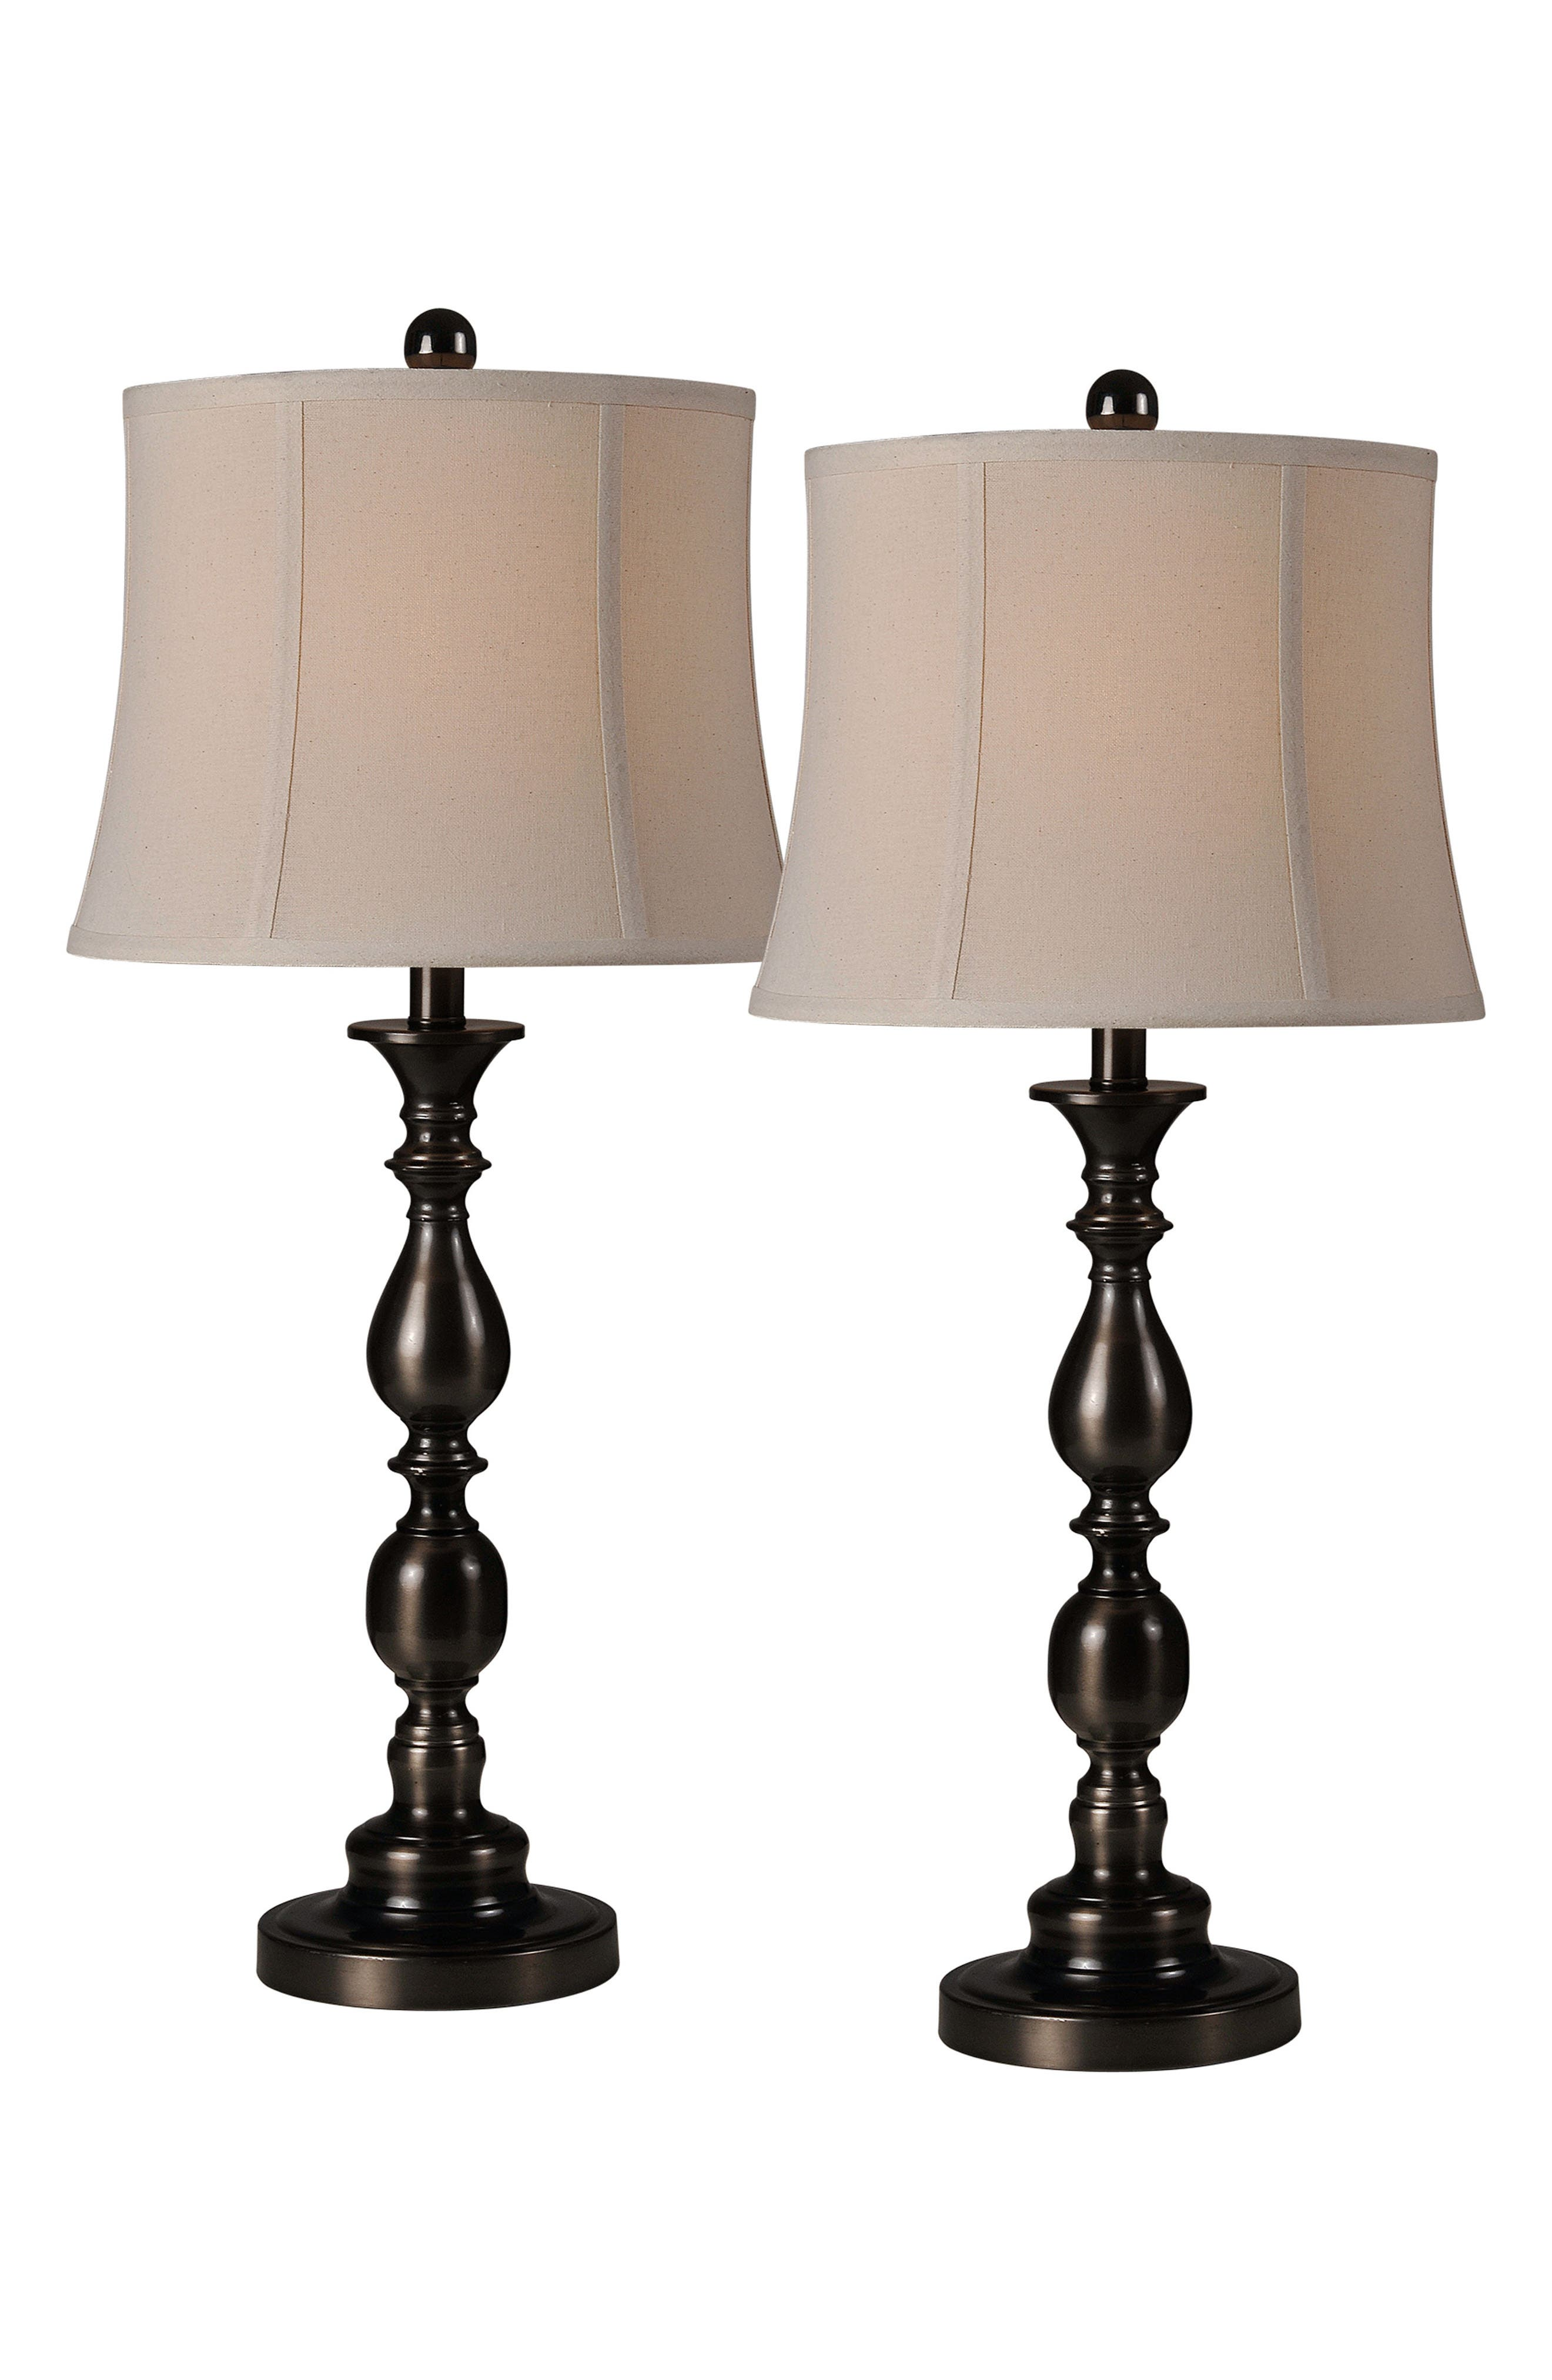 Main Image - Renwil Scala Set of 2 Table Lamps